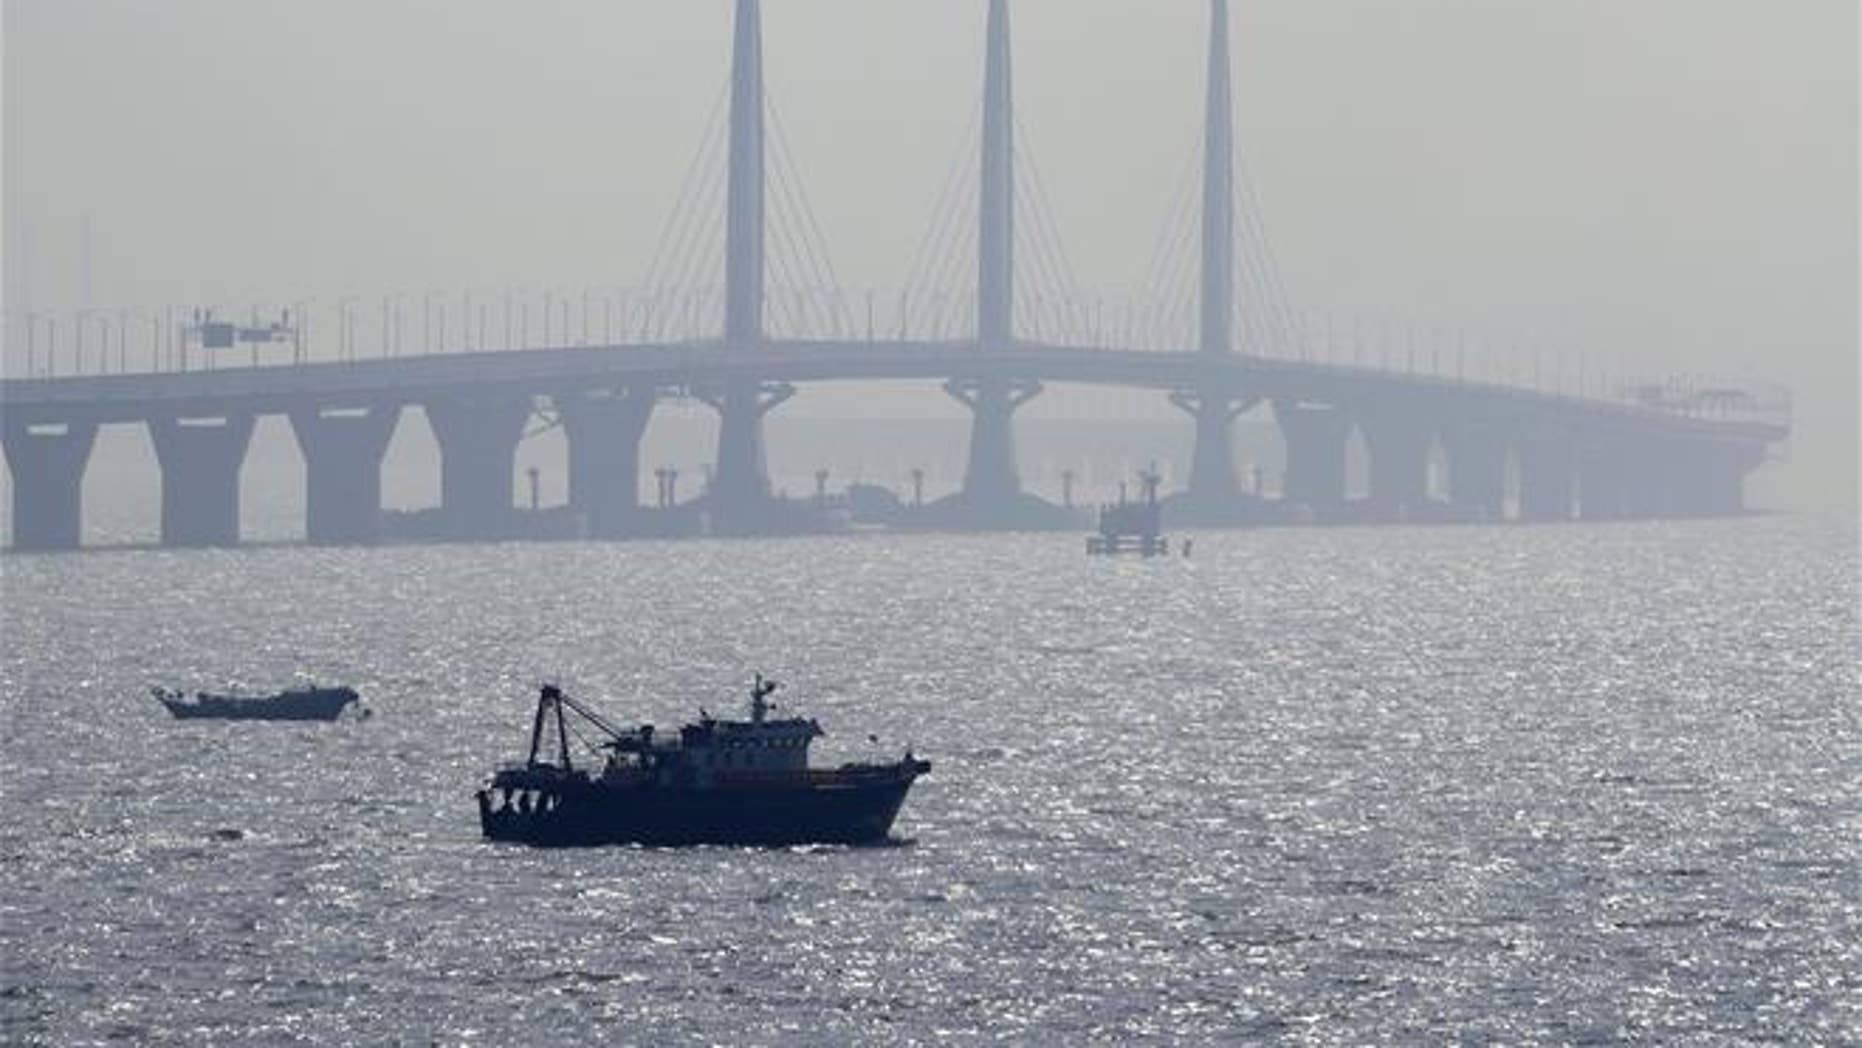 A boat sails near the Hong Kong-Zhuhai-Macau Bridge, in Zhuhai city in China on March 28, 2018.